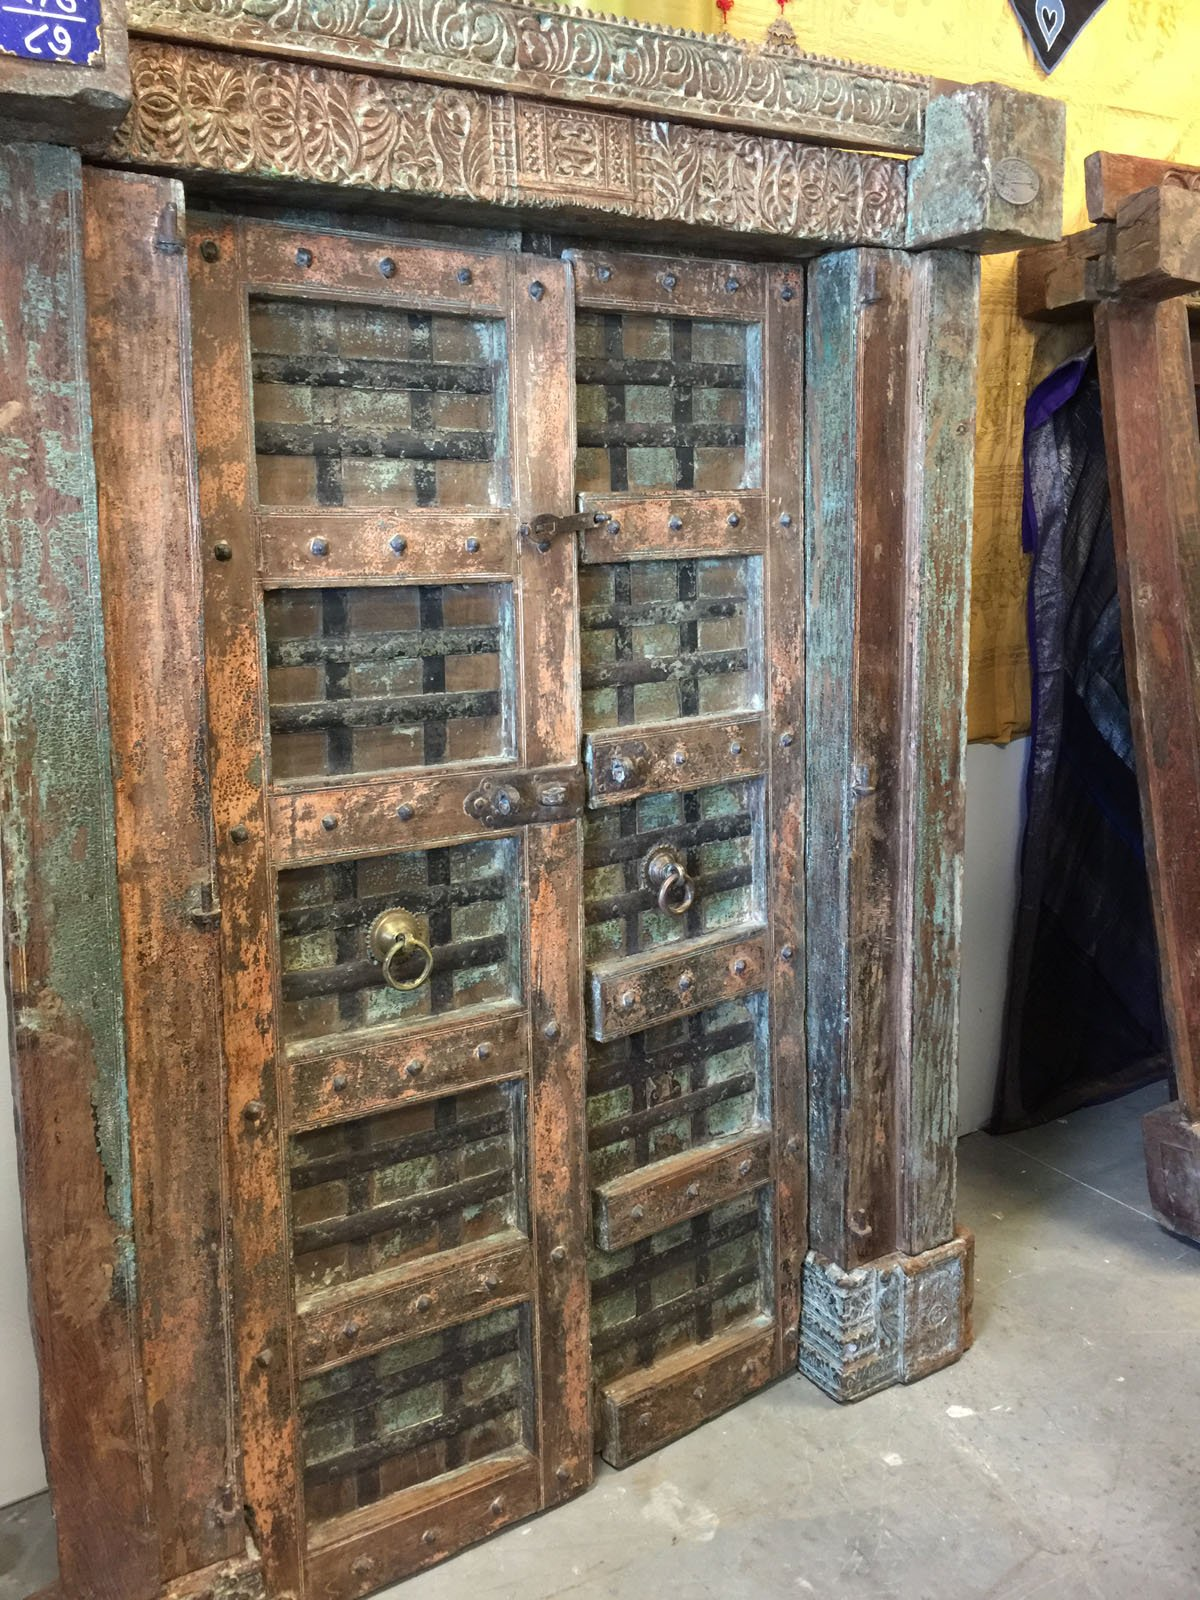 Mogul Antique India Doors NATURAL DISTRESSED Rustic Vintage Teak Iron Carved Architecture Barn Doors SPANISH Hacienda Shabby Chic 18C by Mogul Interior